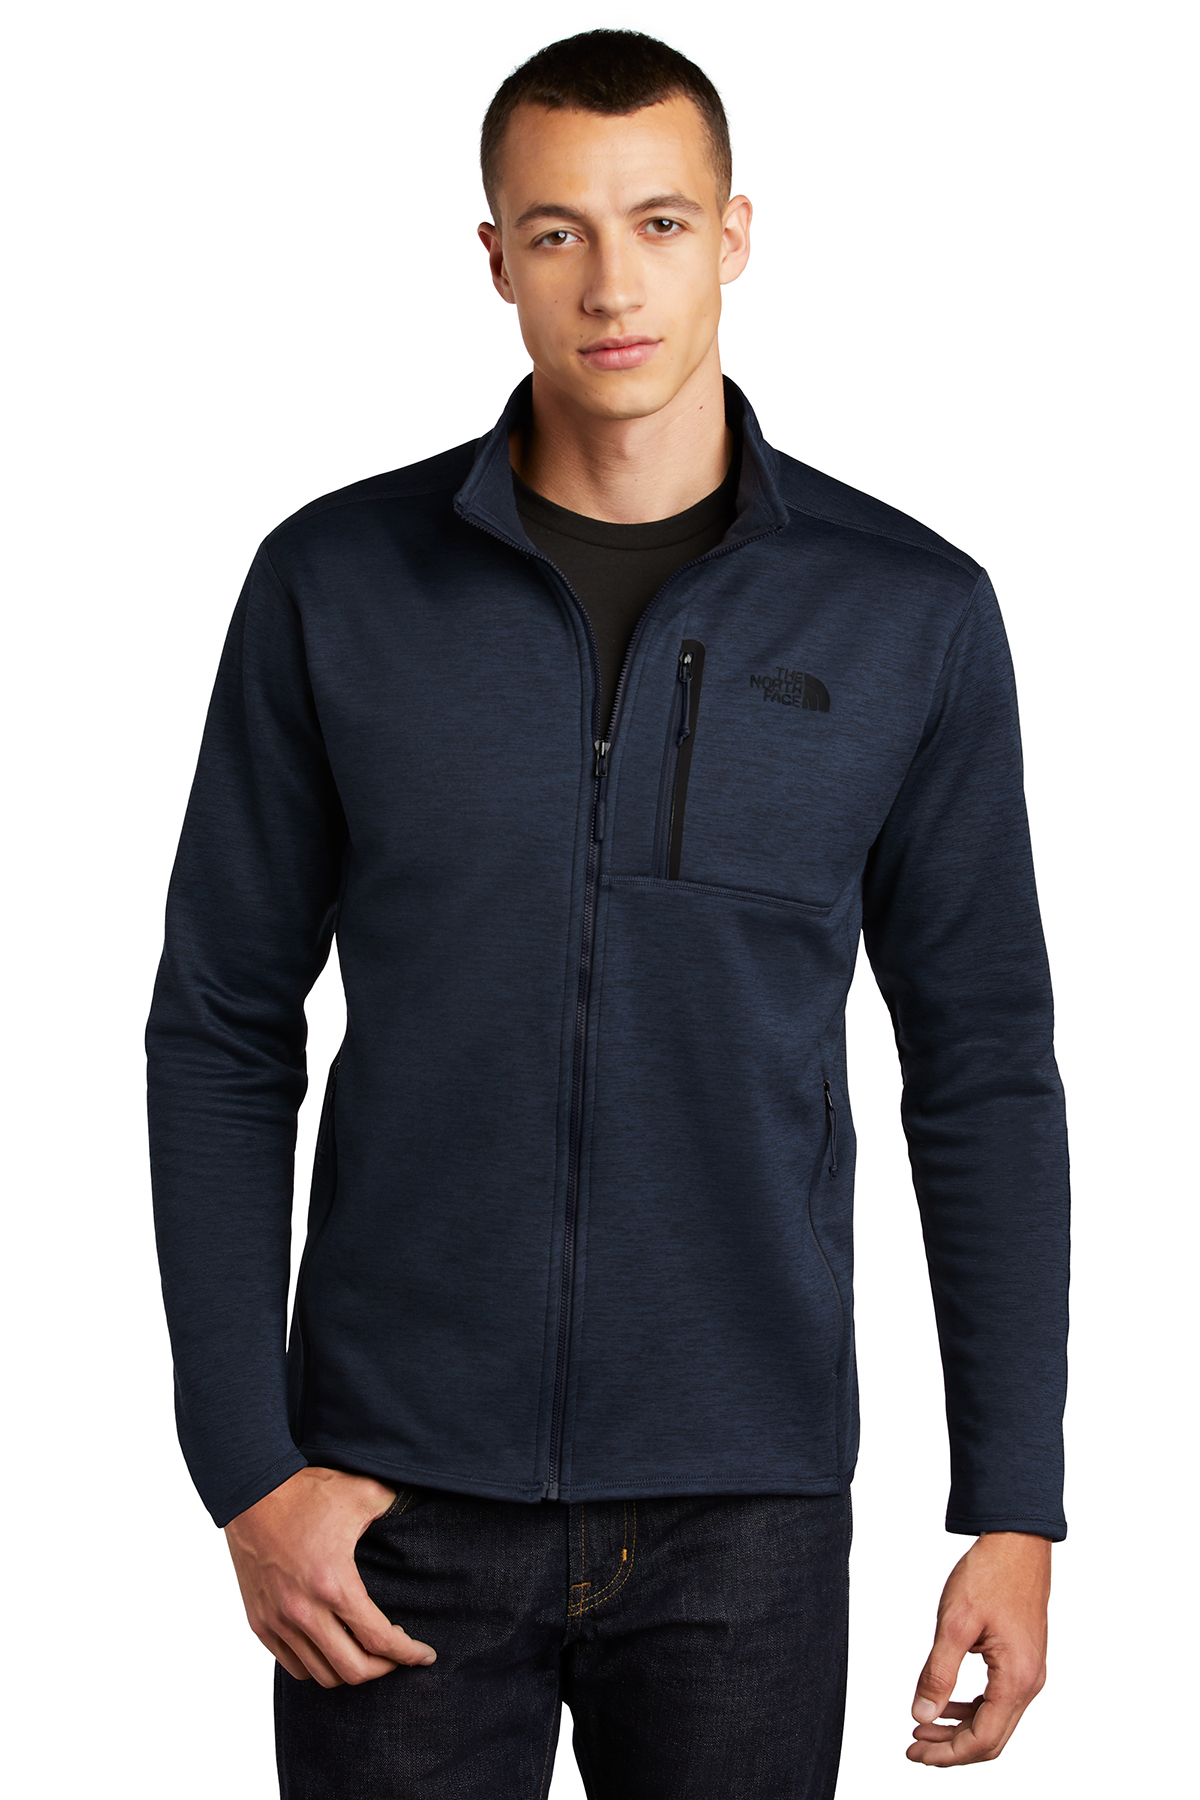 The North Face NF0A47F5 - Skyline Full-Zip Fleece Jacket